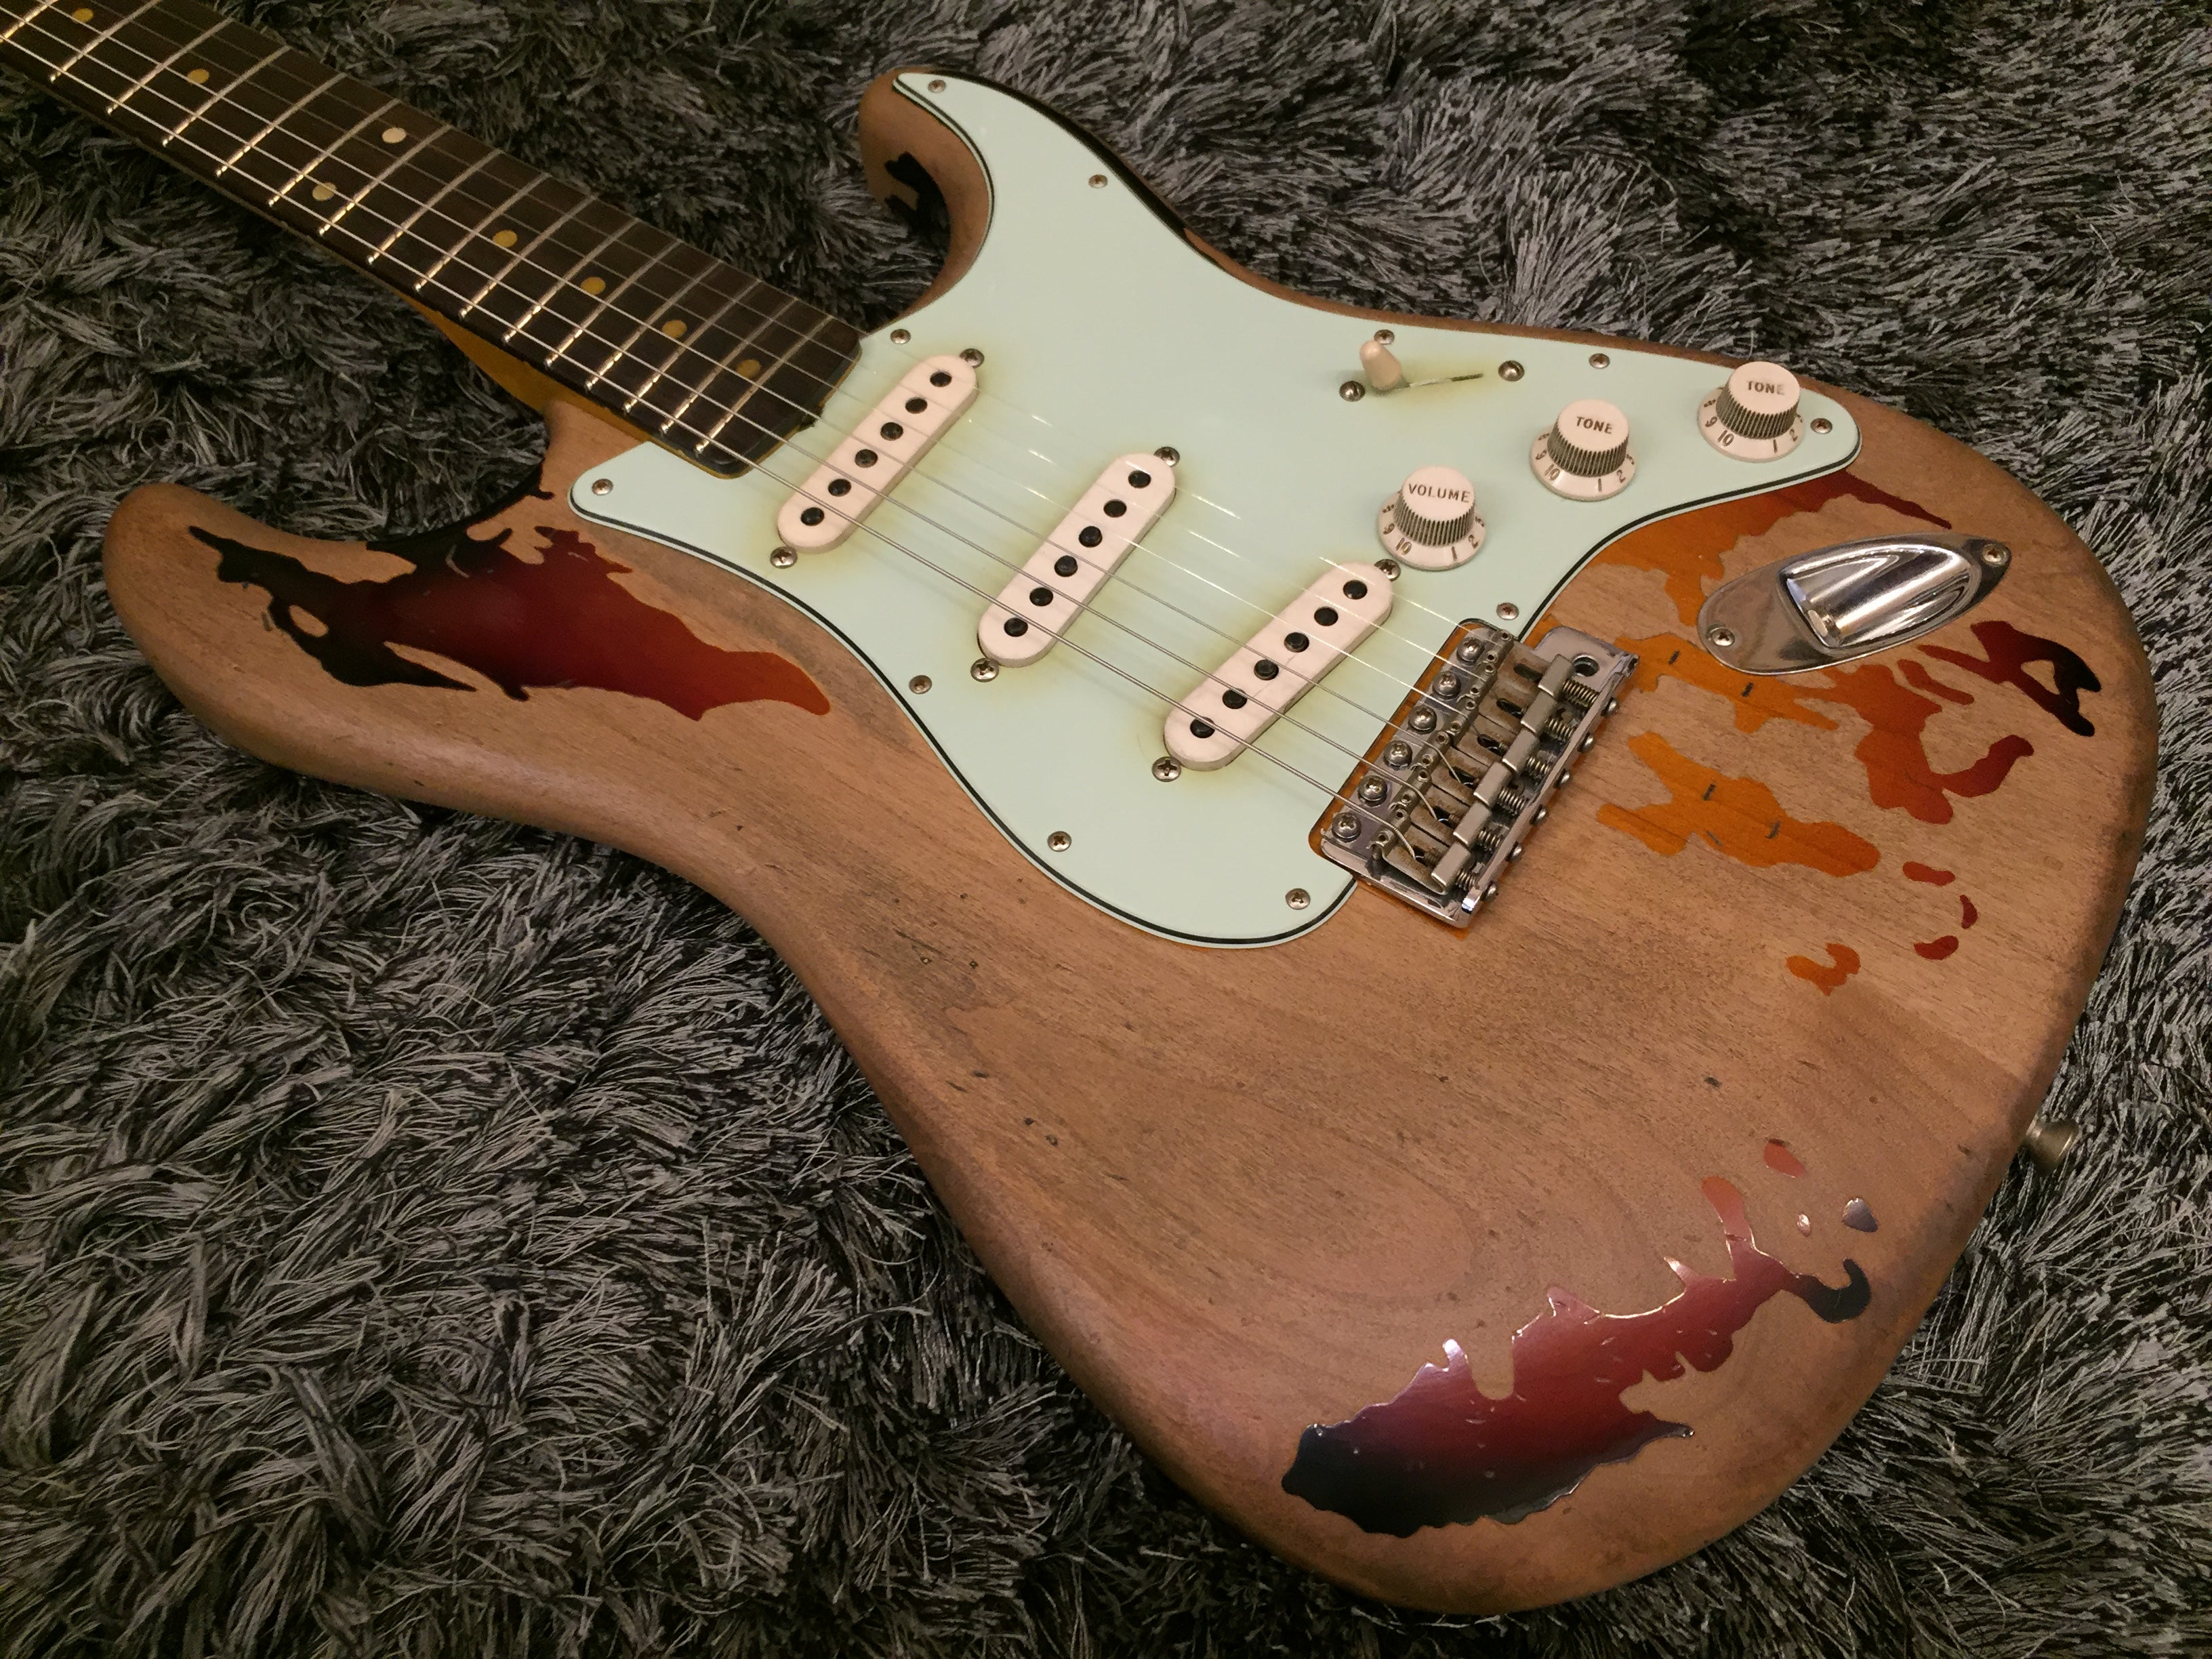 Fender Custom Shop Rory Gallagher Tribute Stratocaster - HIENDGUITAR   HIENDGUITAR.COM GUITAR